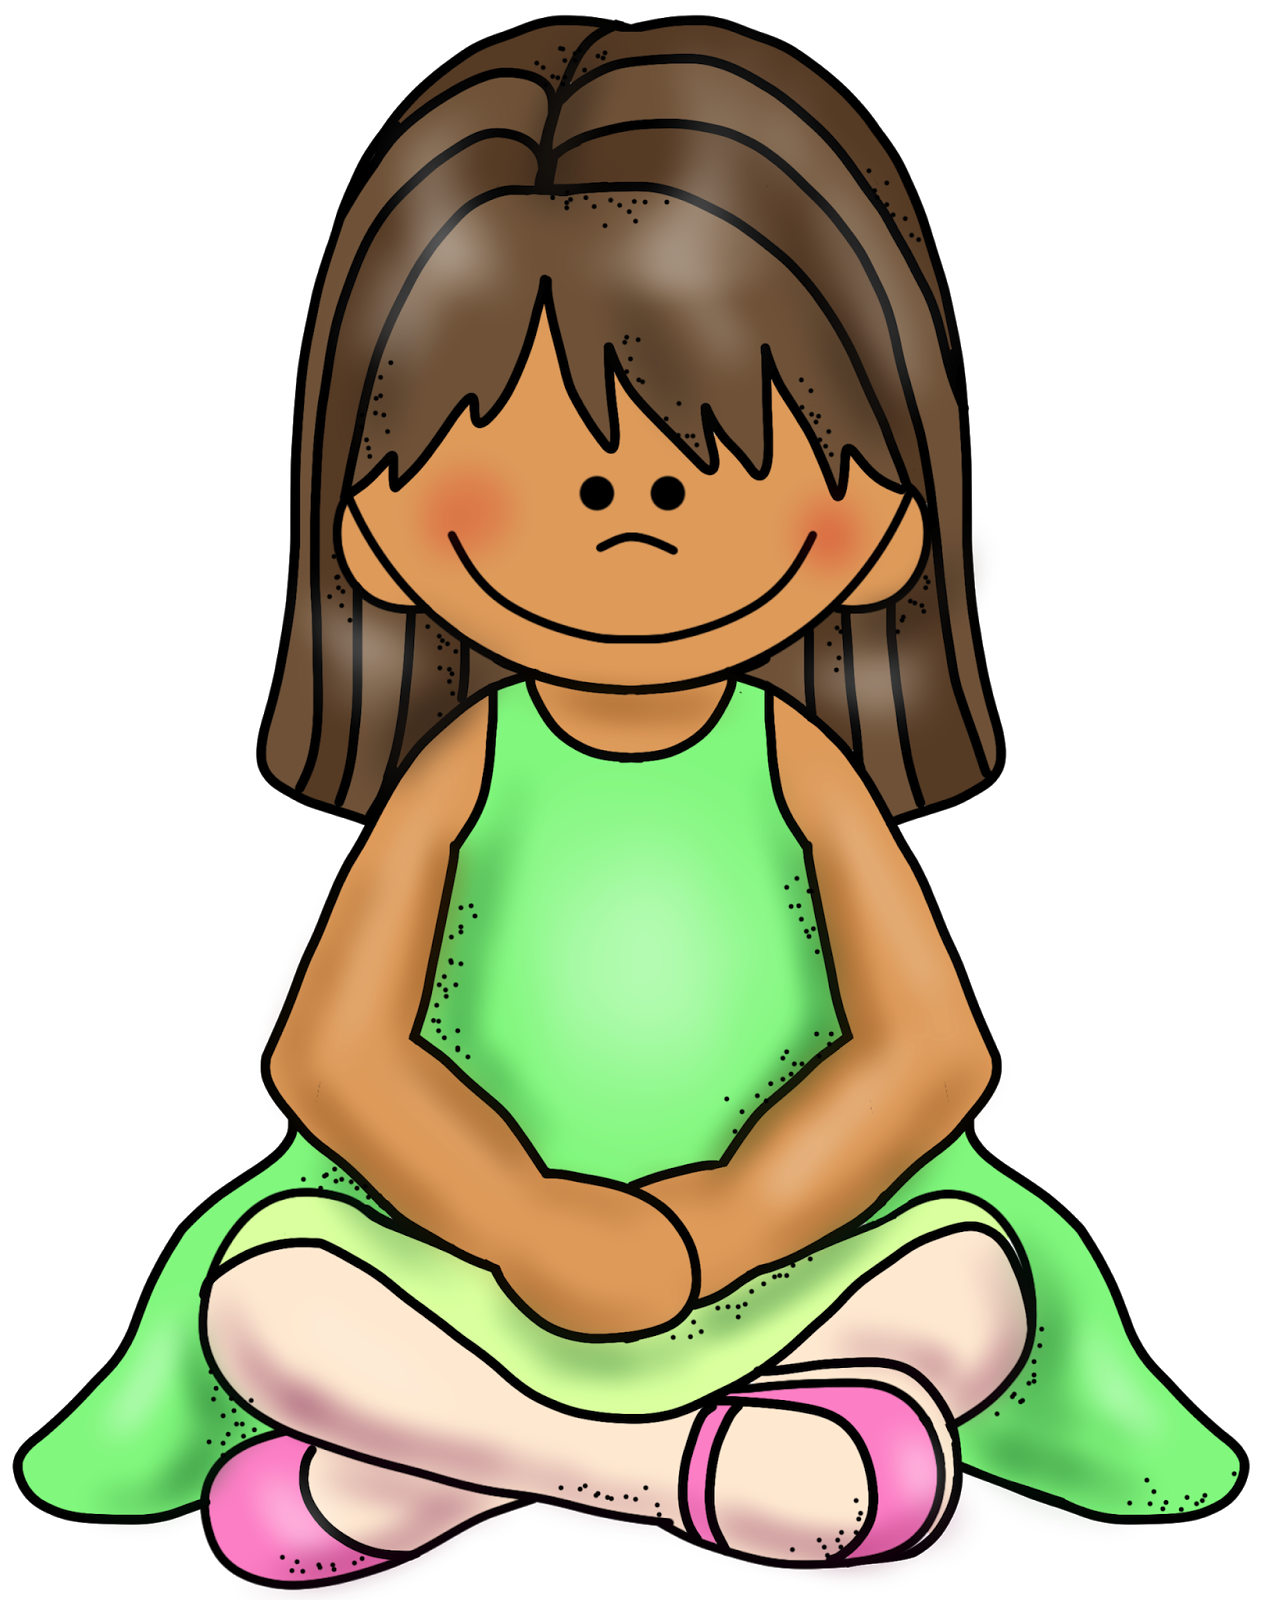 Clipart child sitting criss cross image royalty free stock Child Sitting Cross Legged Clipart (15+) image royalty free stock